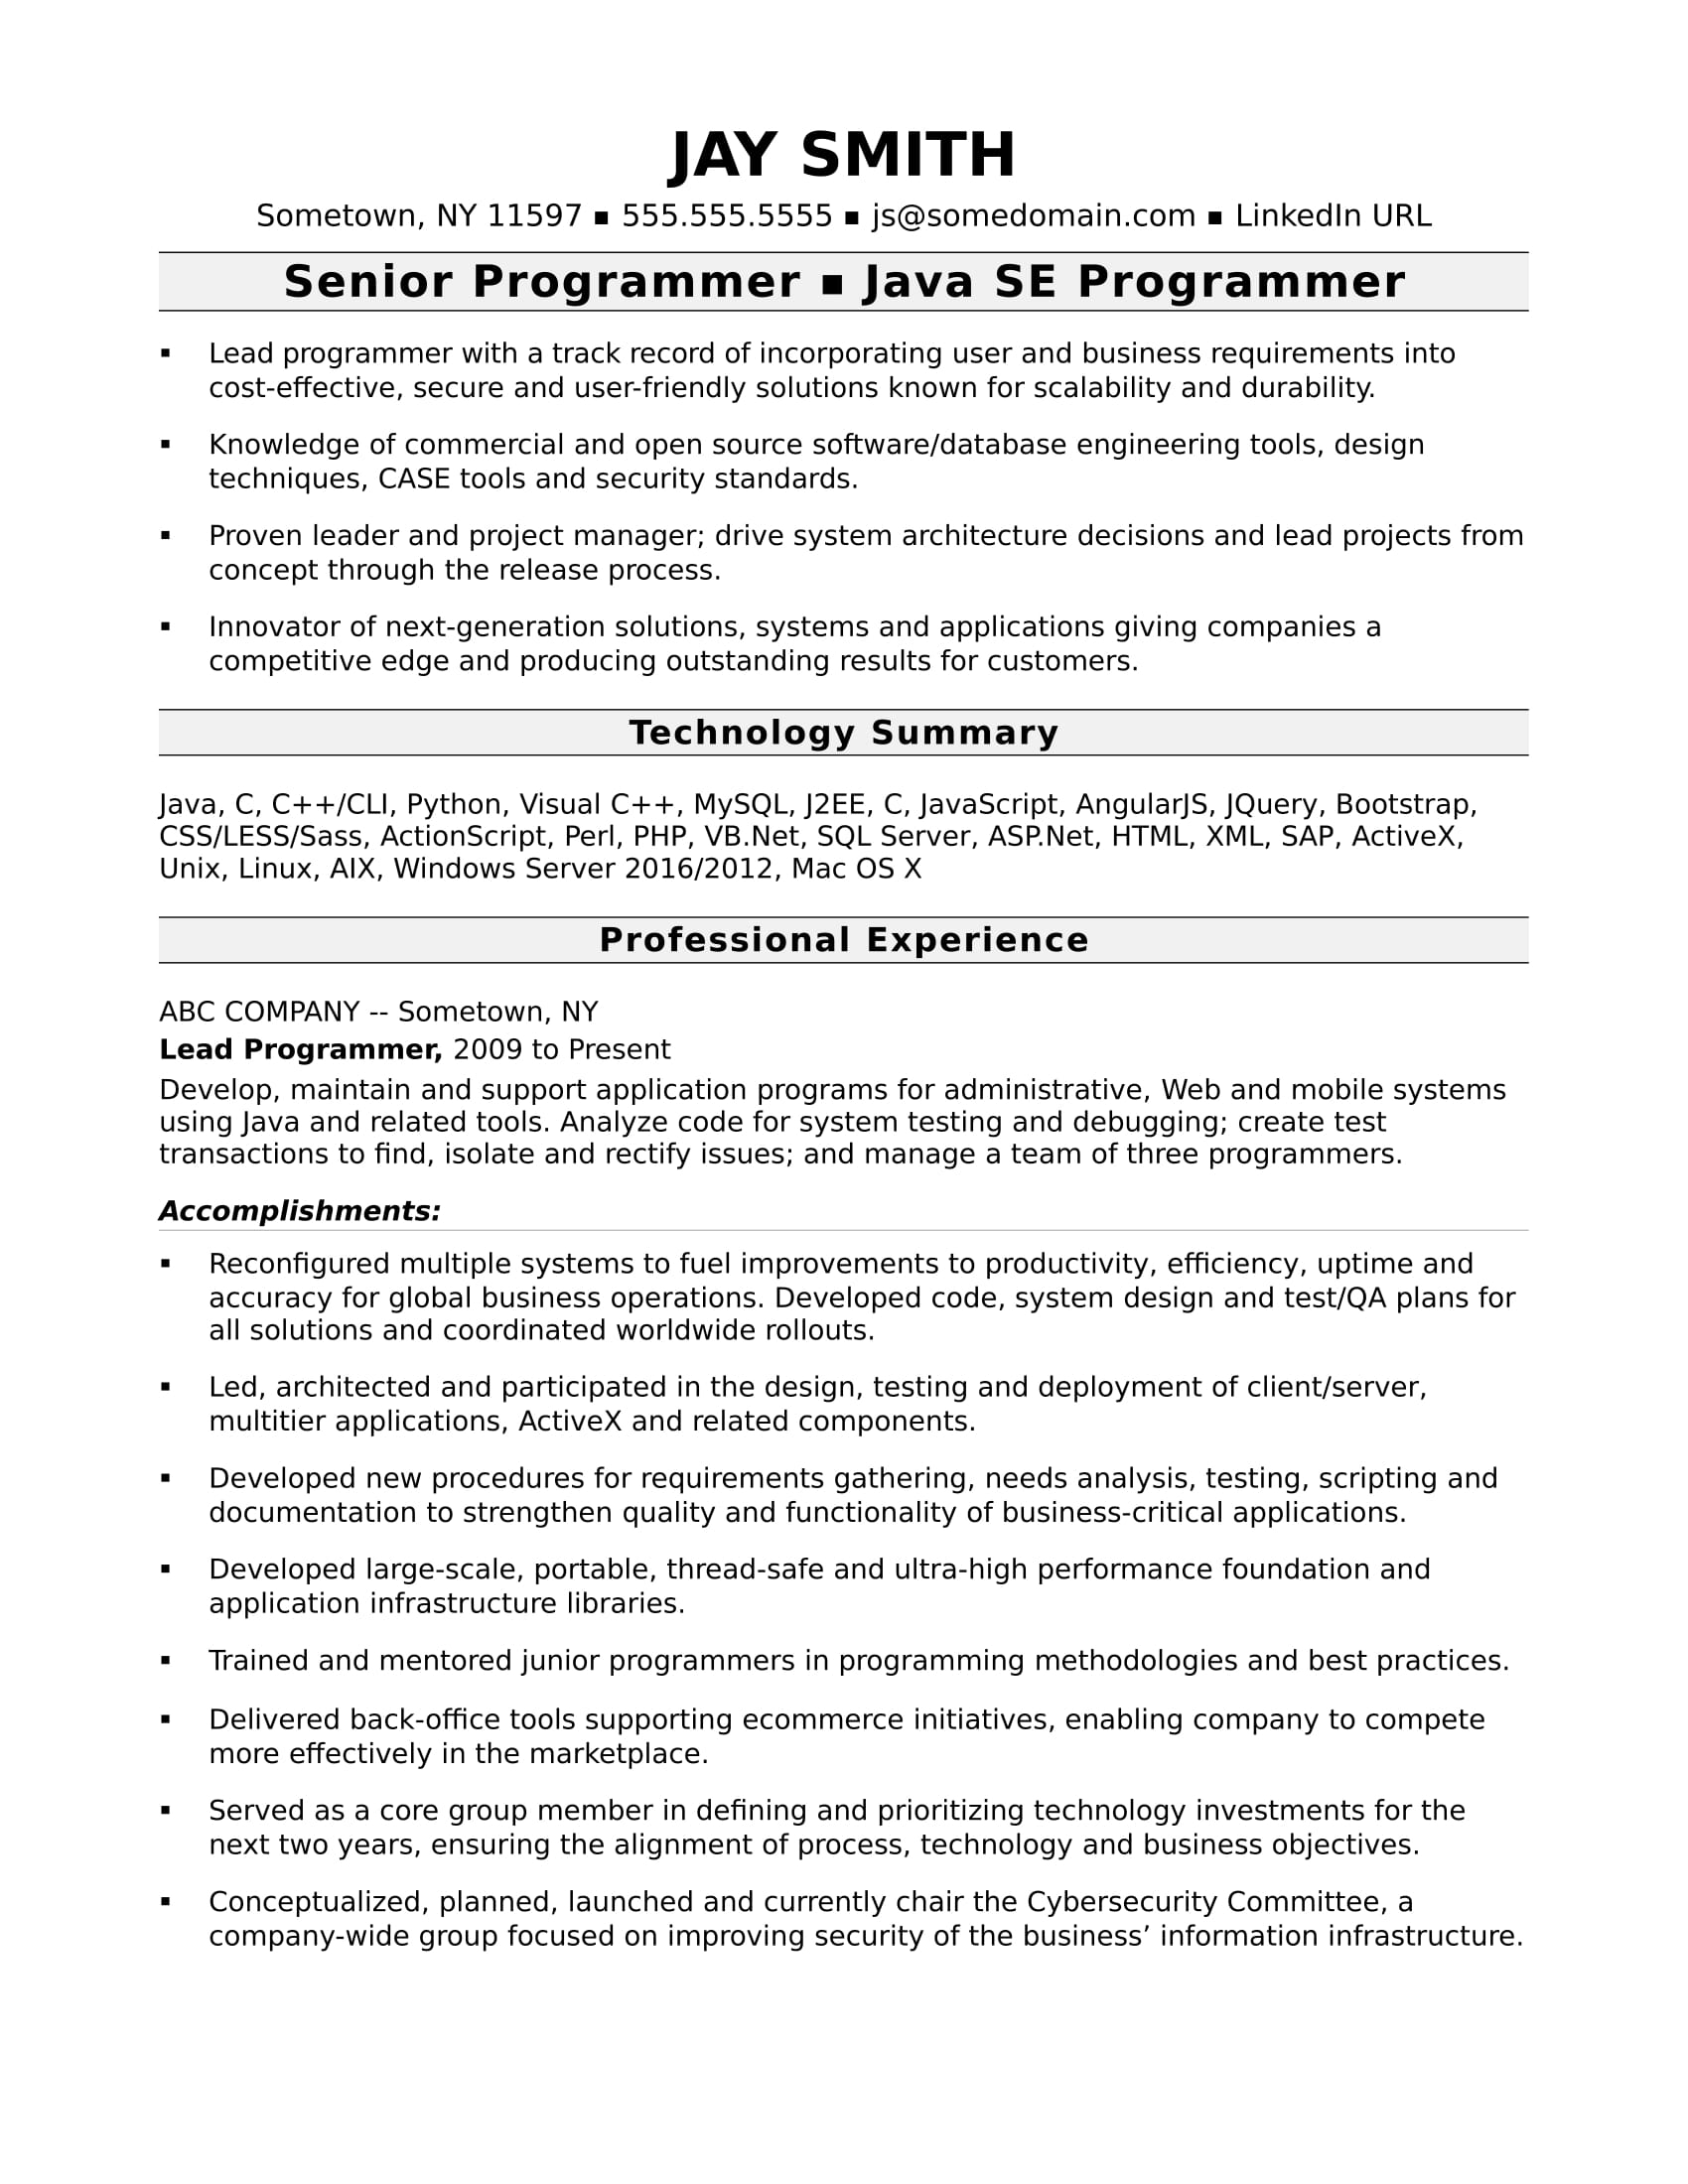 sample resume for an experienced computer programmer java sample resume - Hadoop Architect Resume Samples